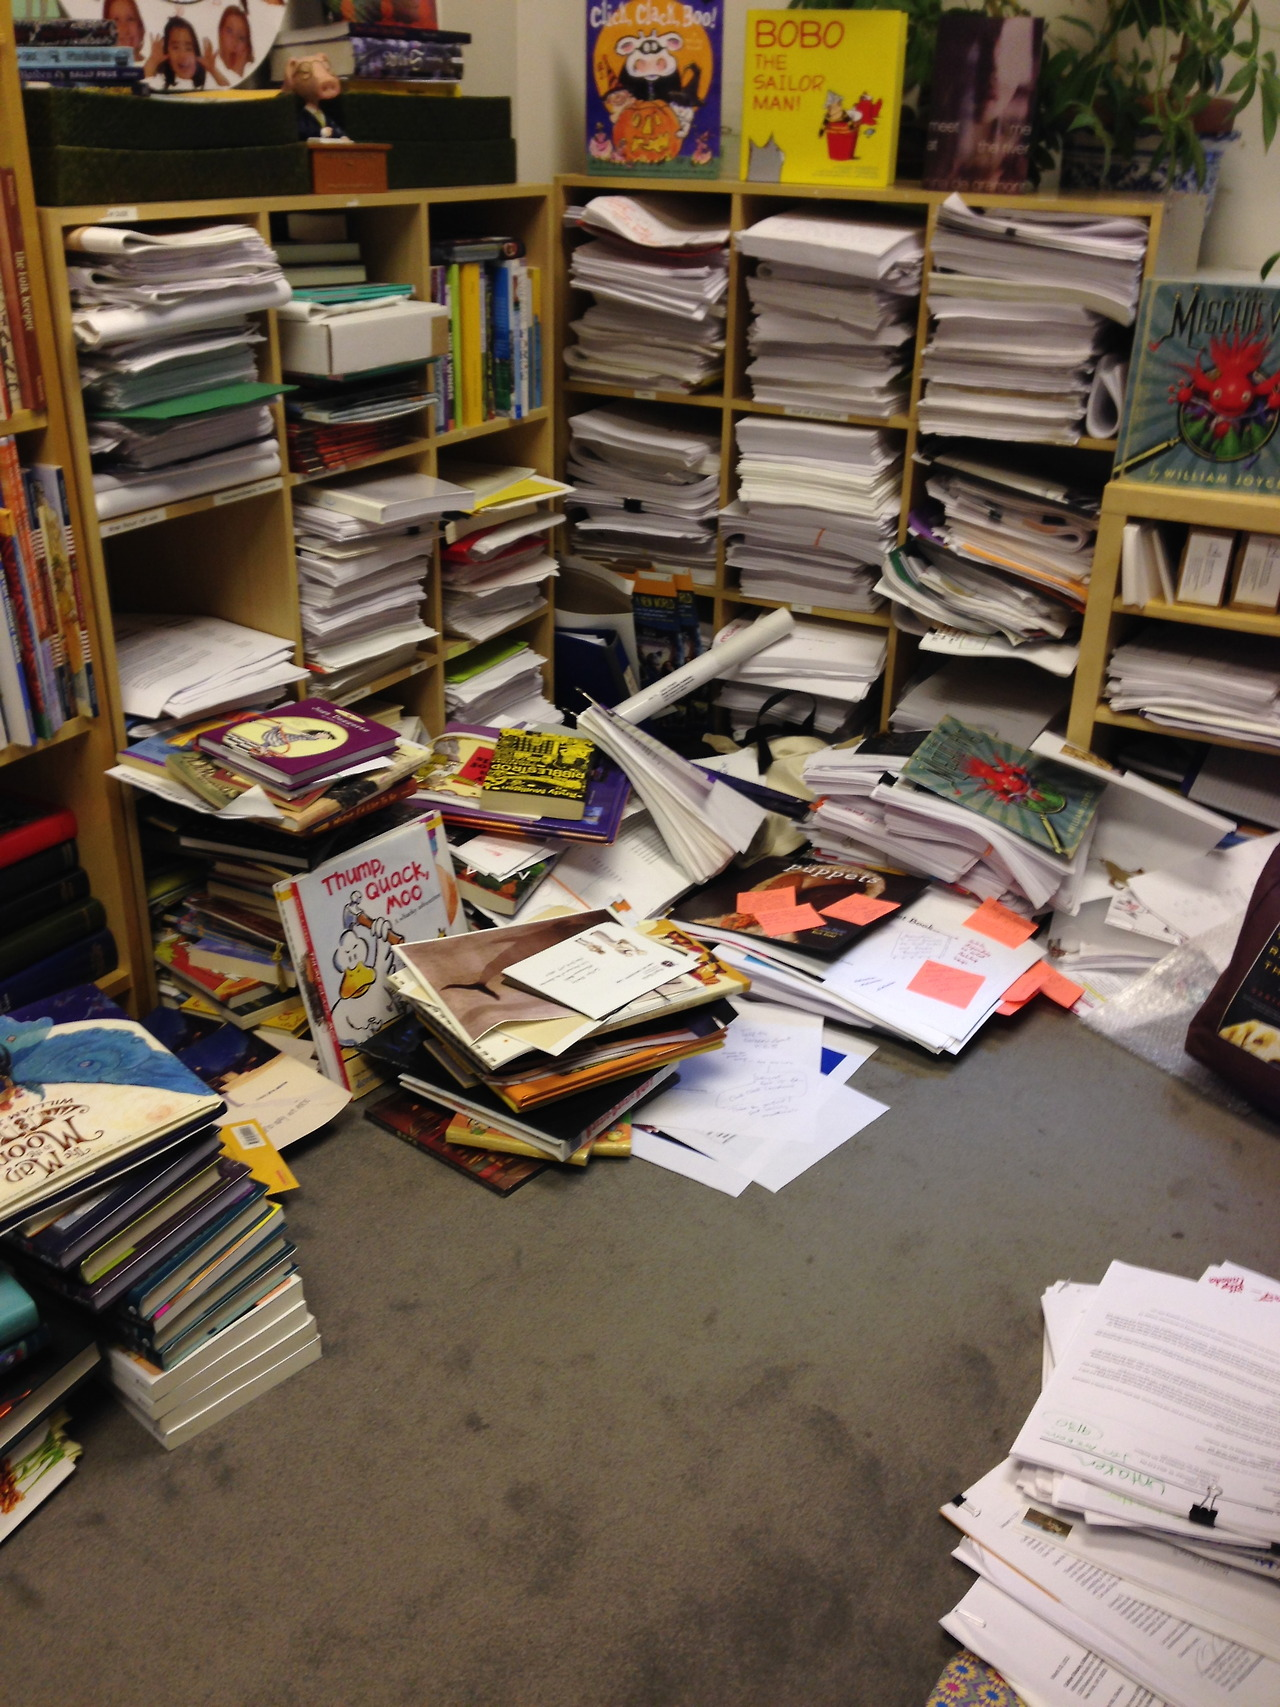 My editor's office. It's a wonder she even returns my emails.